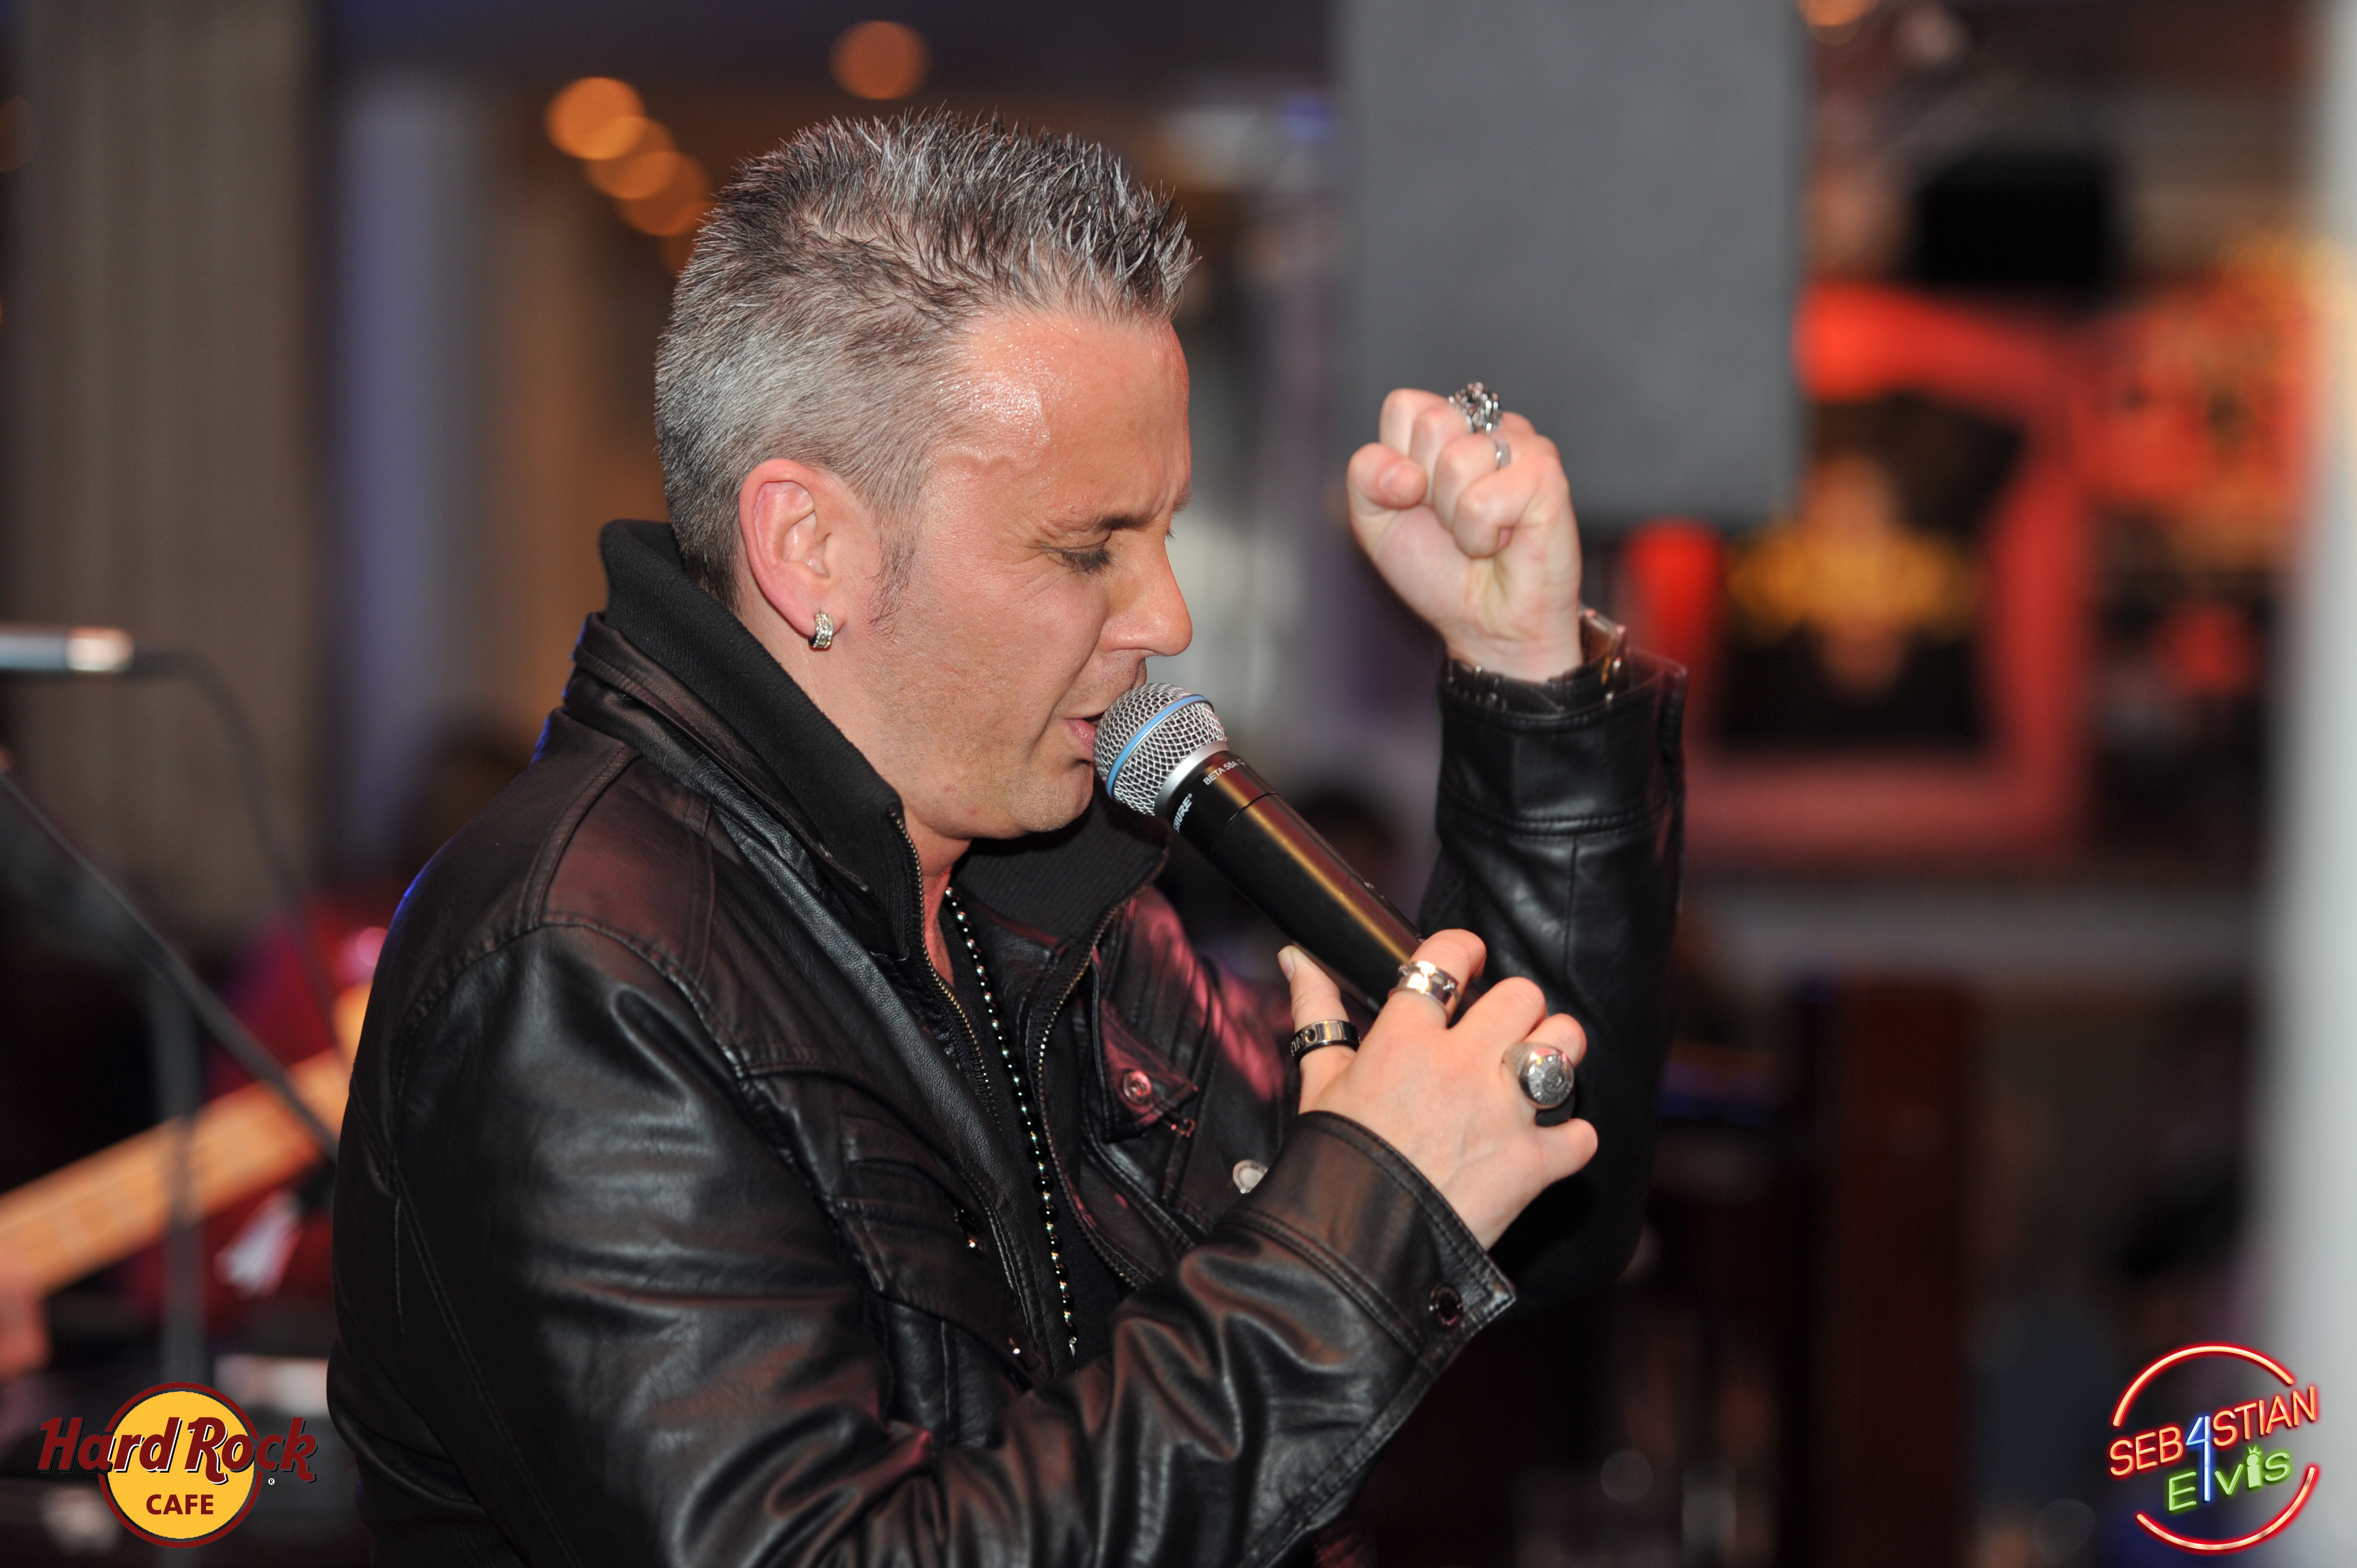 hard-rock-cafe-paris-elvis-night-27 janvier-2016-sebastian-for-elvis-facebook-memorial-show-0069